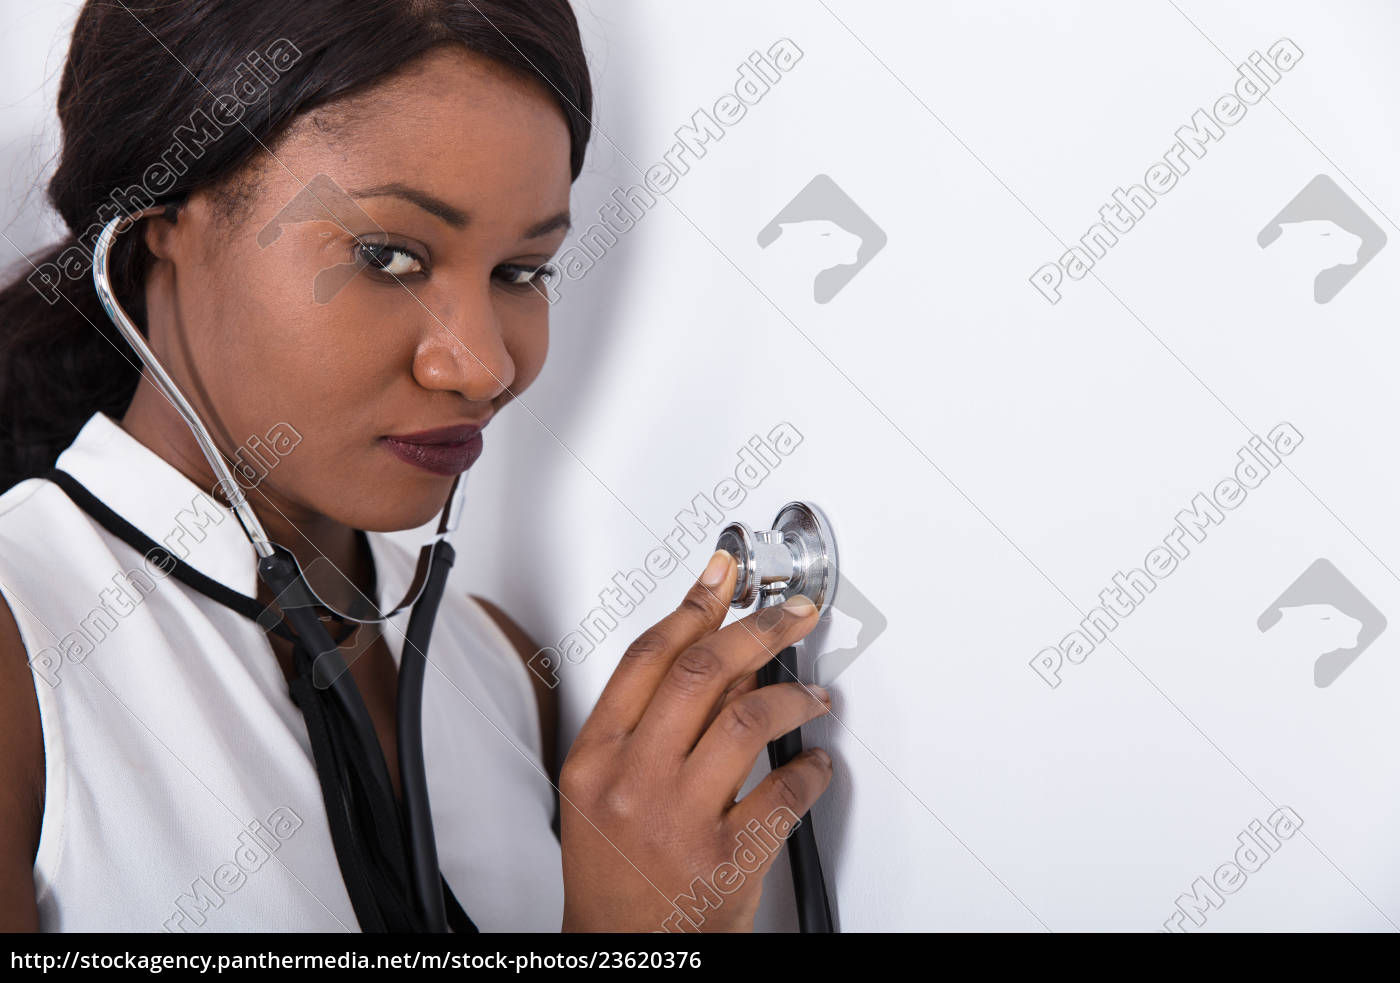 woman, placing, stethoscope, on, wall - 23620376